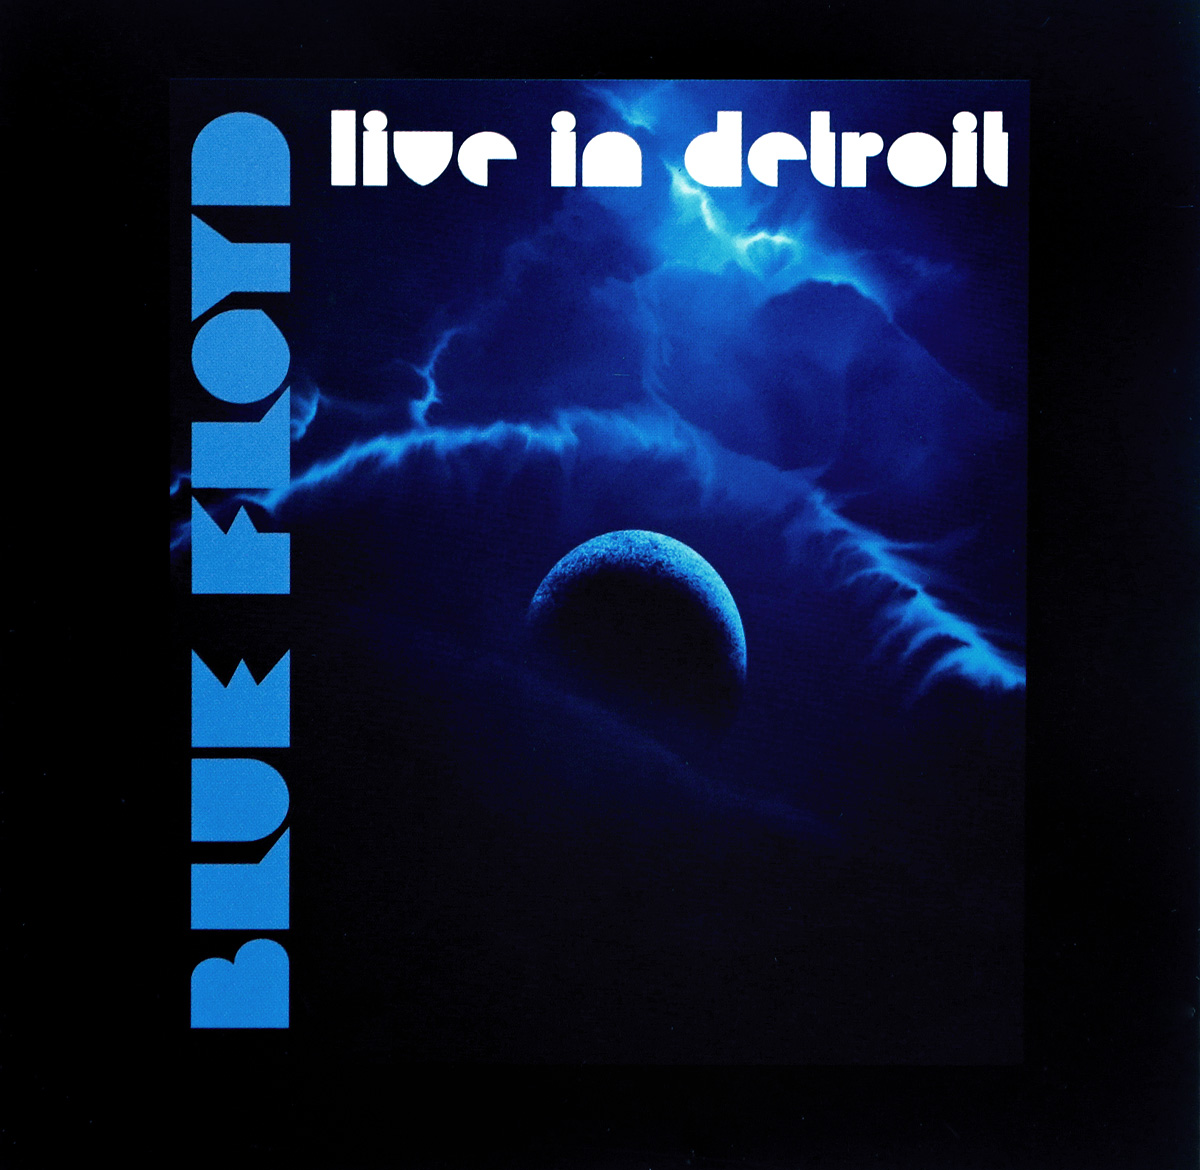 Blue Floyd. Live In Detroit. The Bands 2000 Tour (3 CD) дойл а затерянный мир the lost world cd 3 й уровень